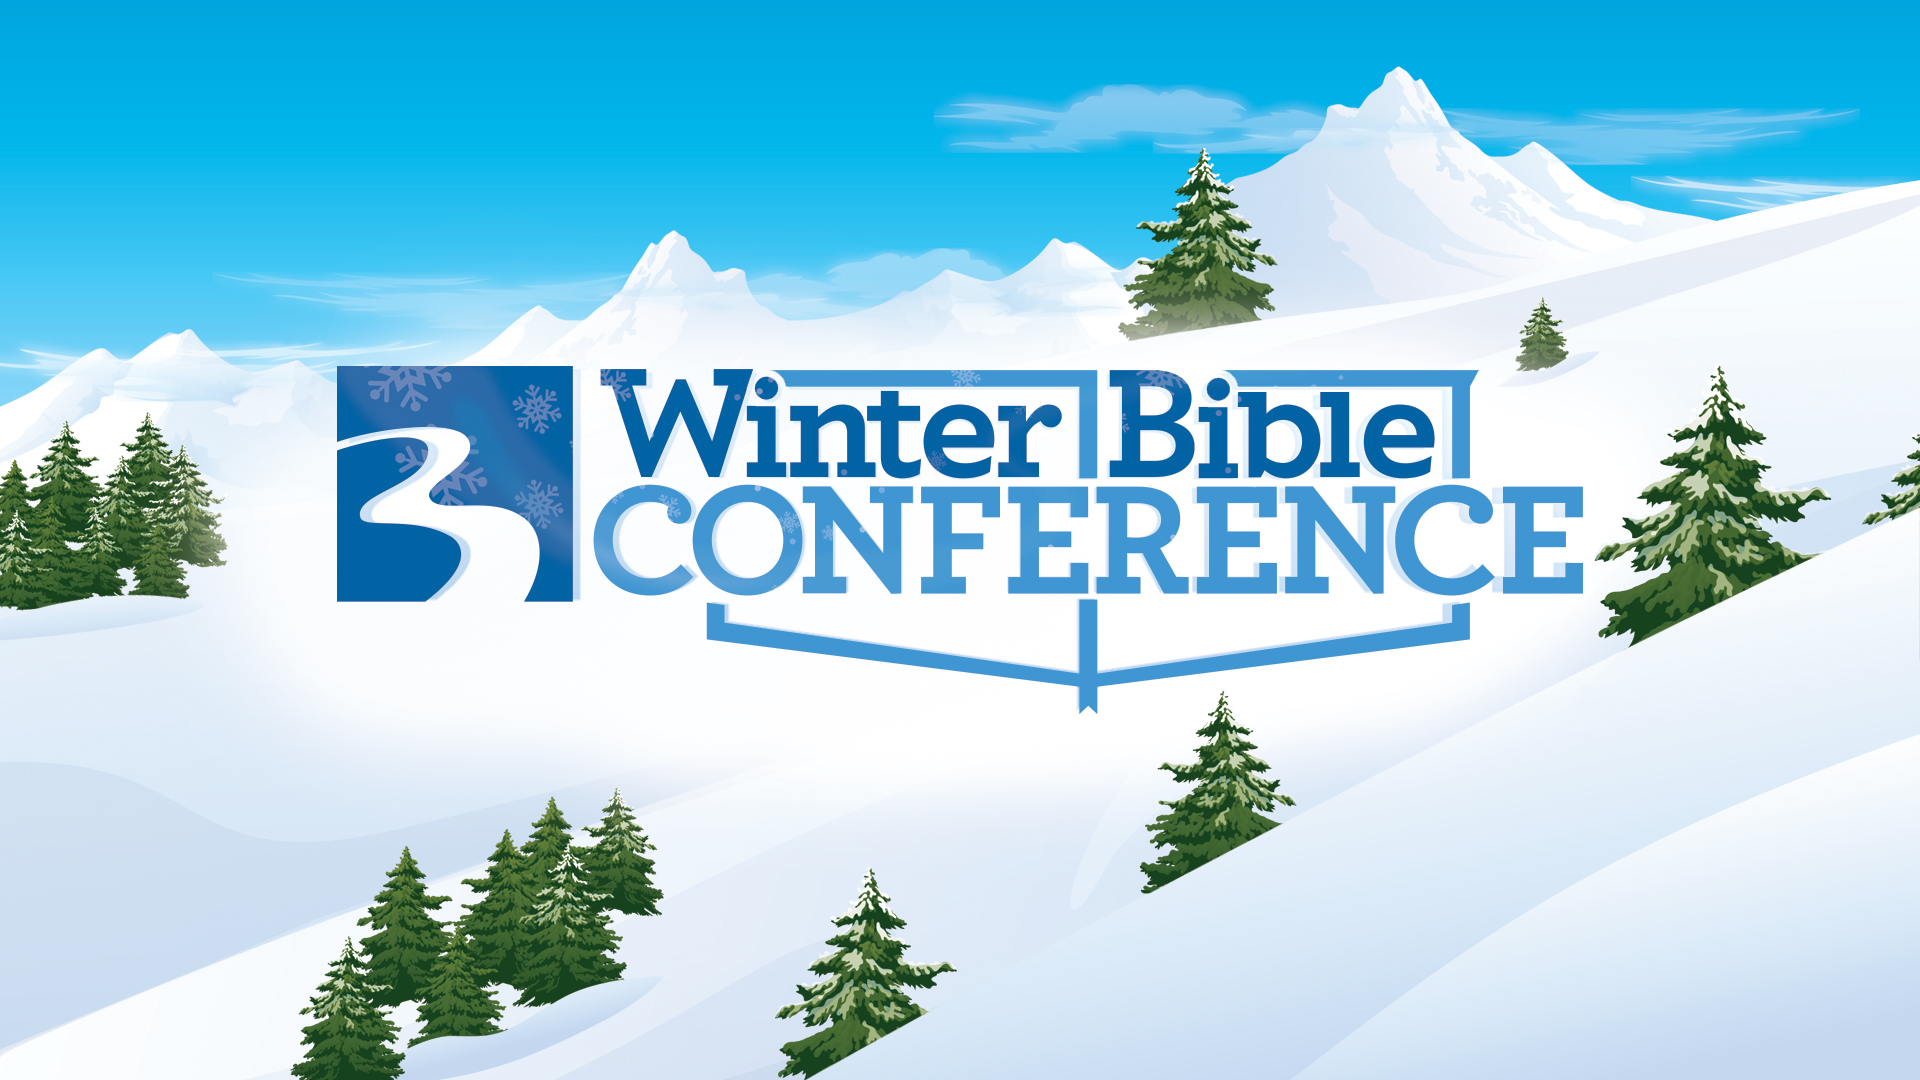 winter-bible-conference-sermons-image